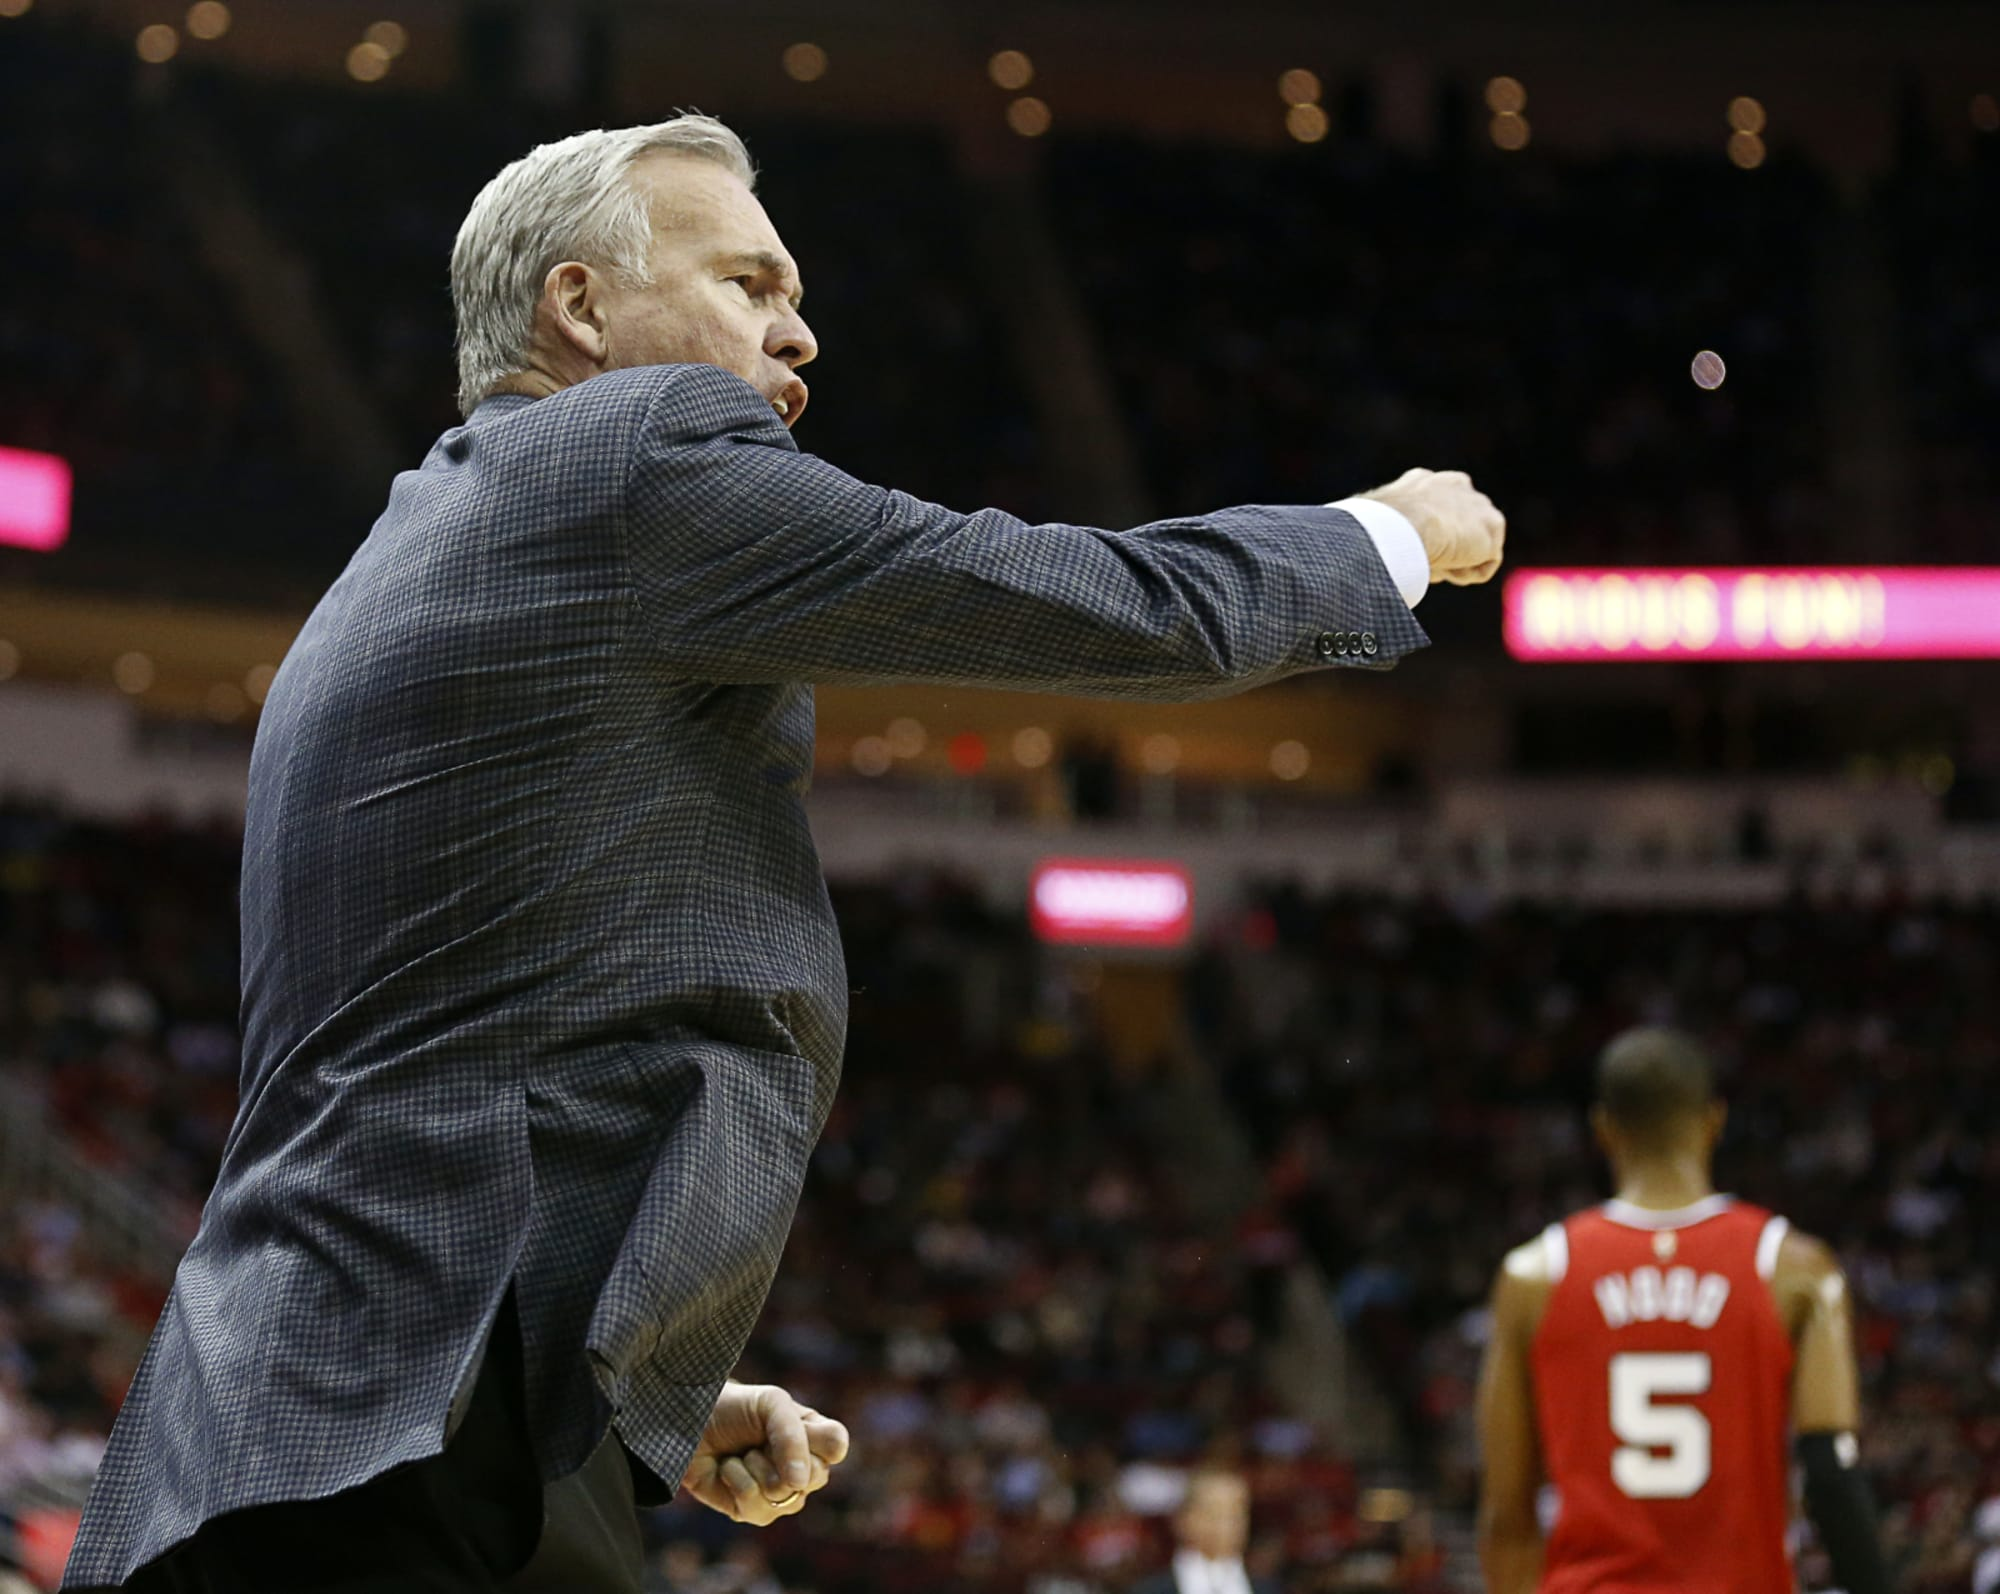 Portland Trail Blazers: Pros and cons of hiring Mike D'Antoni